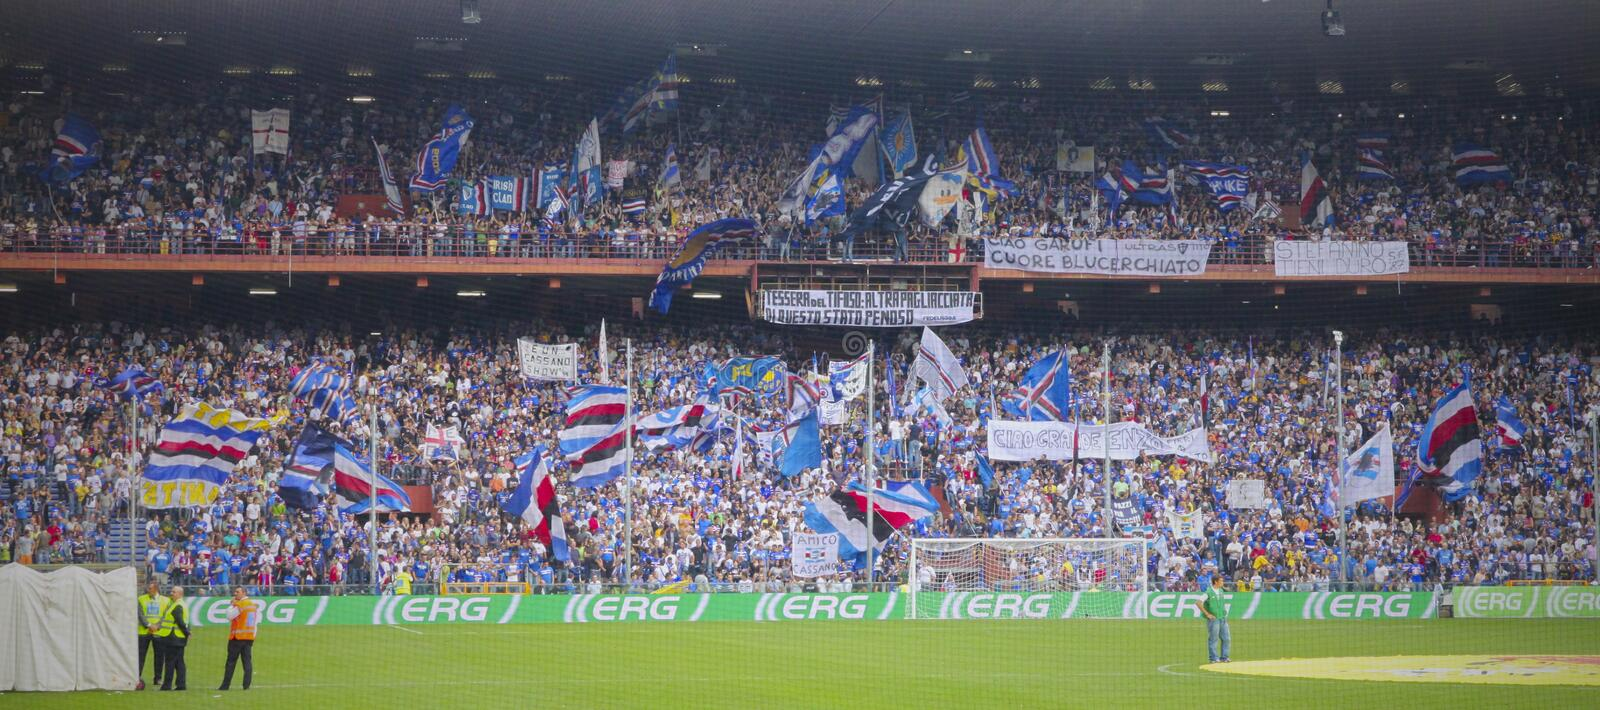 Download Before The Match Sampdoria - Inter Editorial Stock Image - Image: 17096904